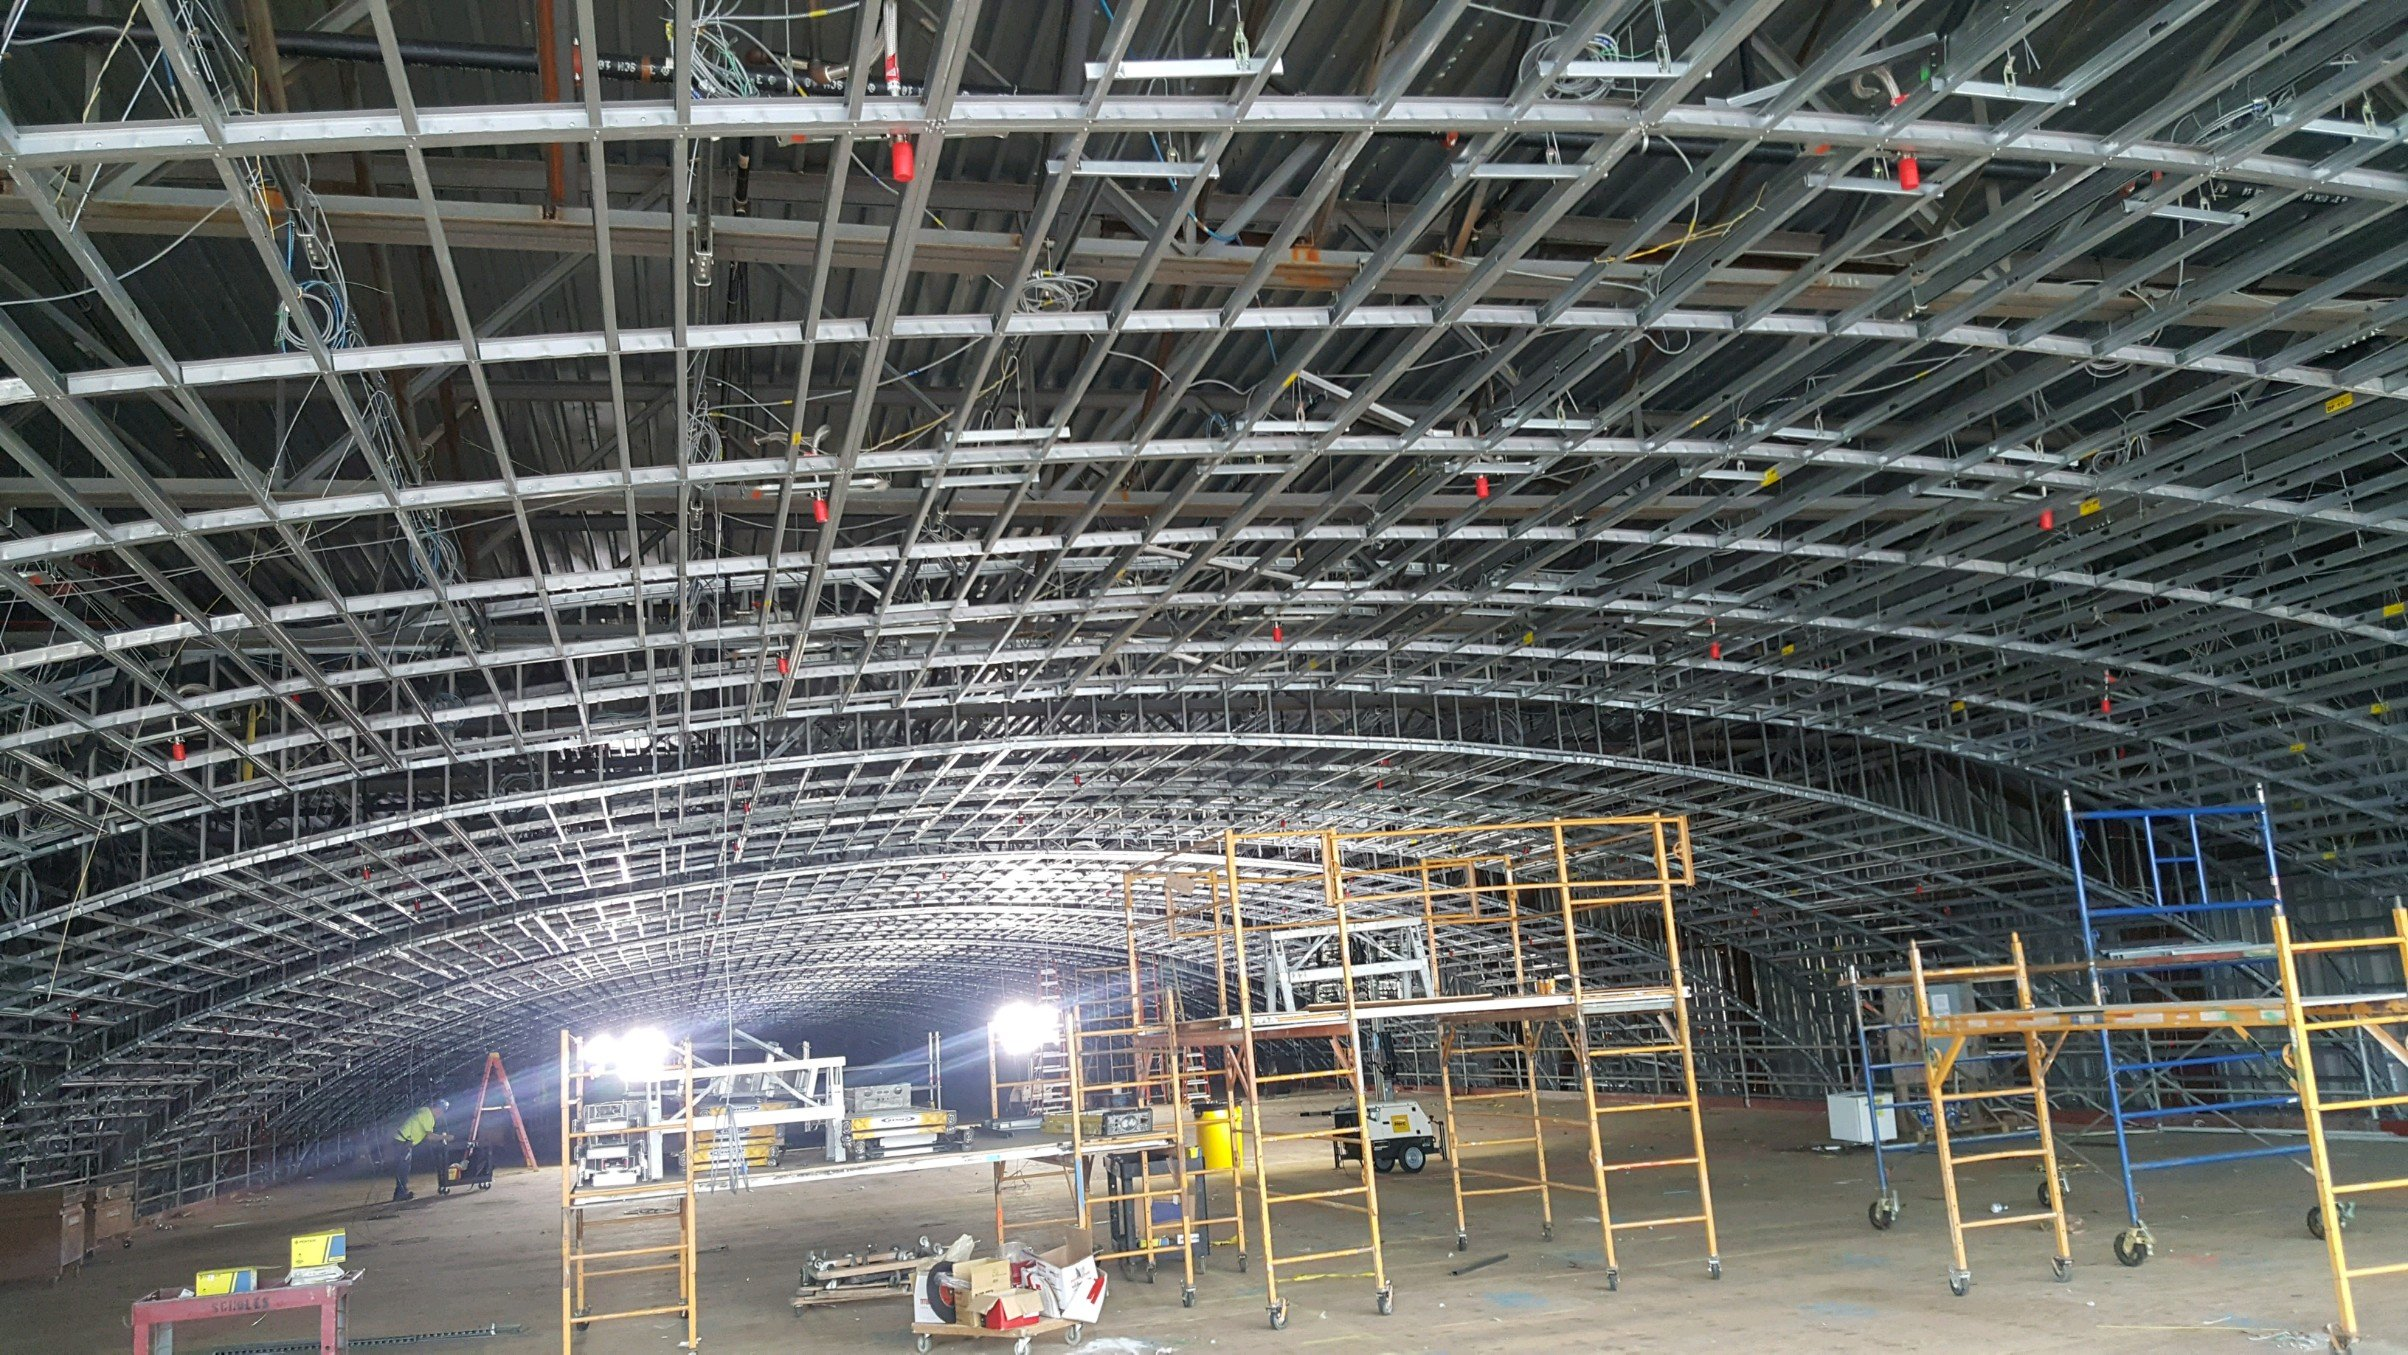 prefabricated light gauge steel ceiling inside american dream shopping mall